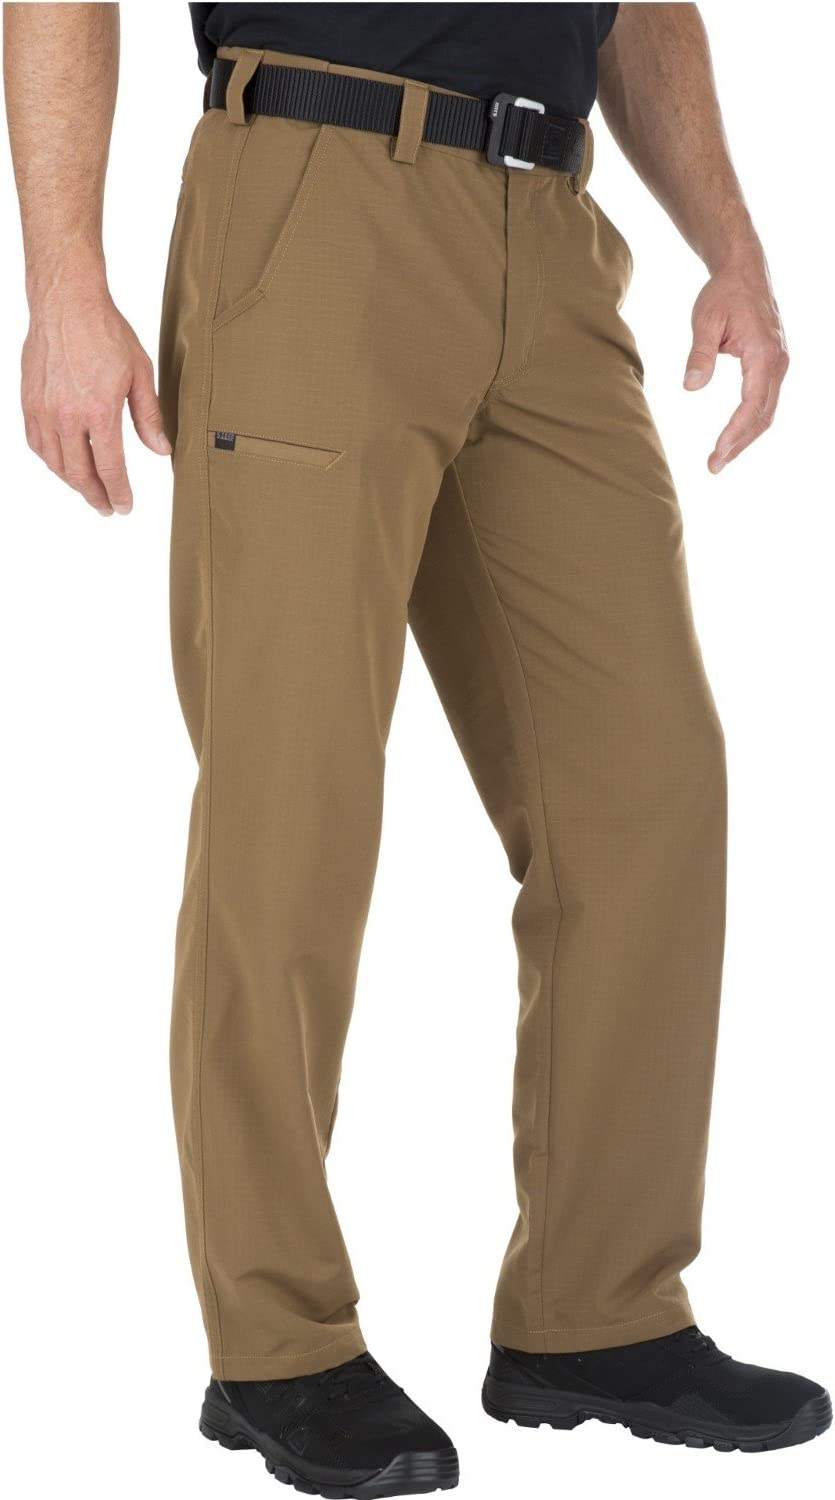 5.11 Tactical Series Men's Fast-Tac Urban Pants Brown